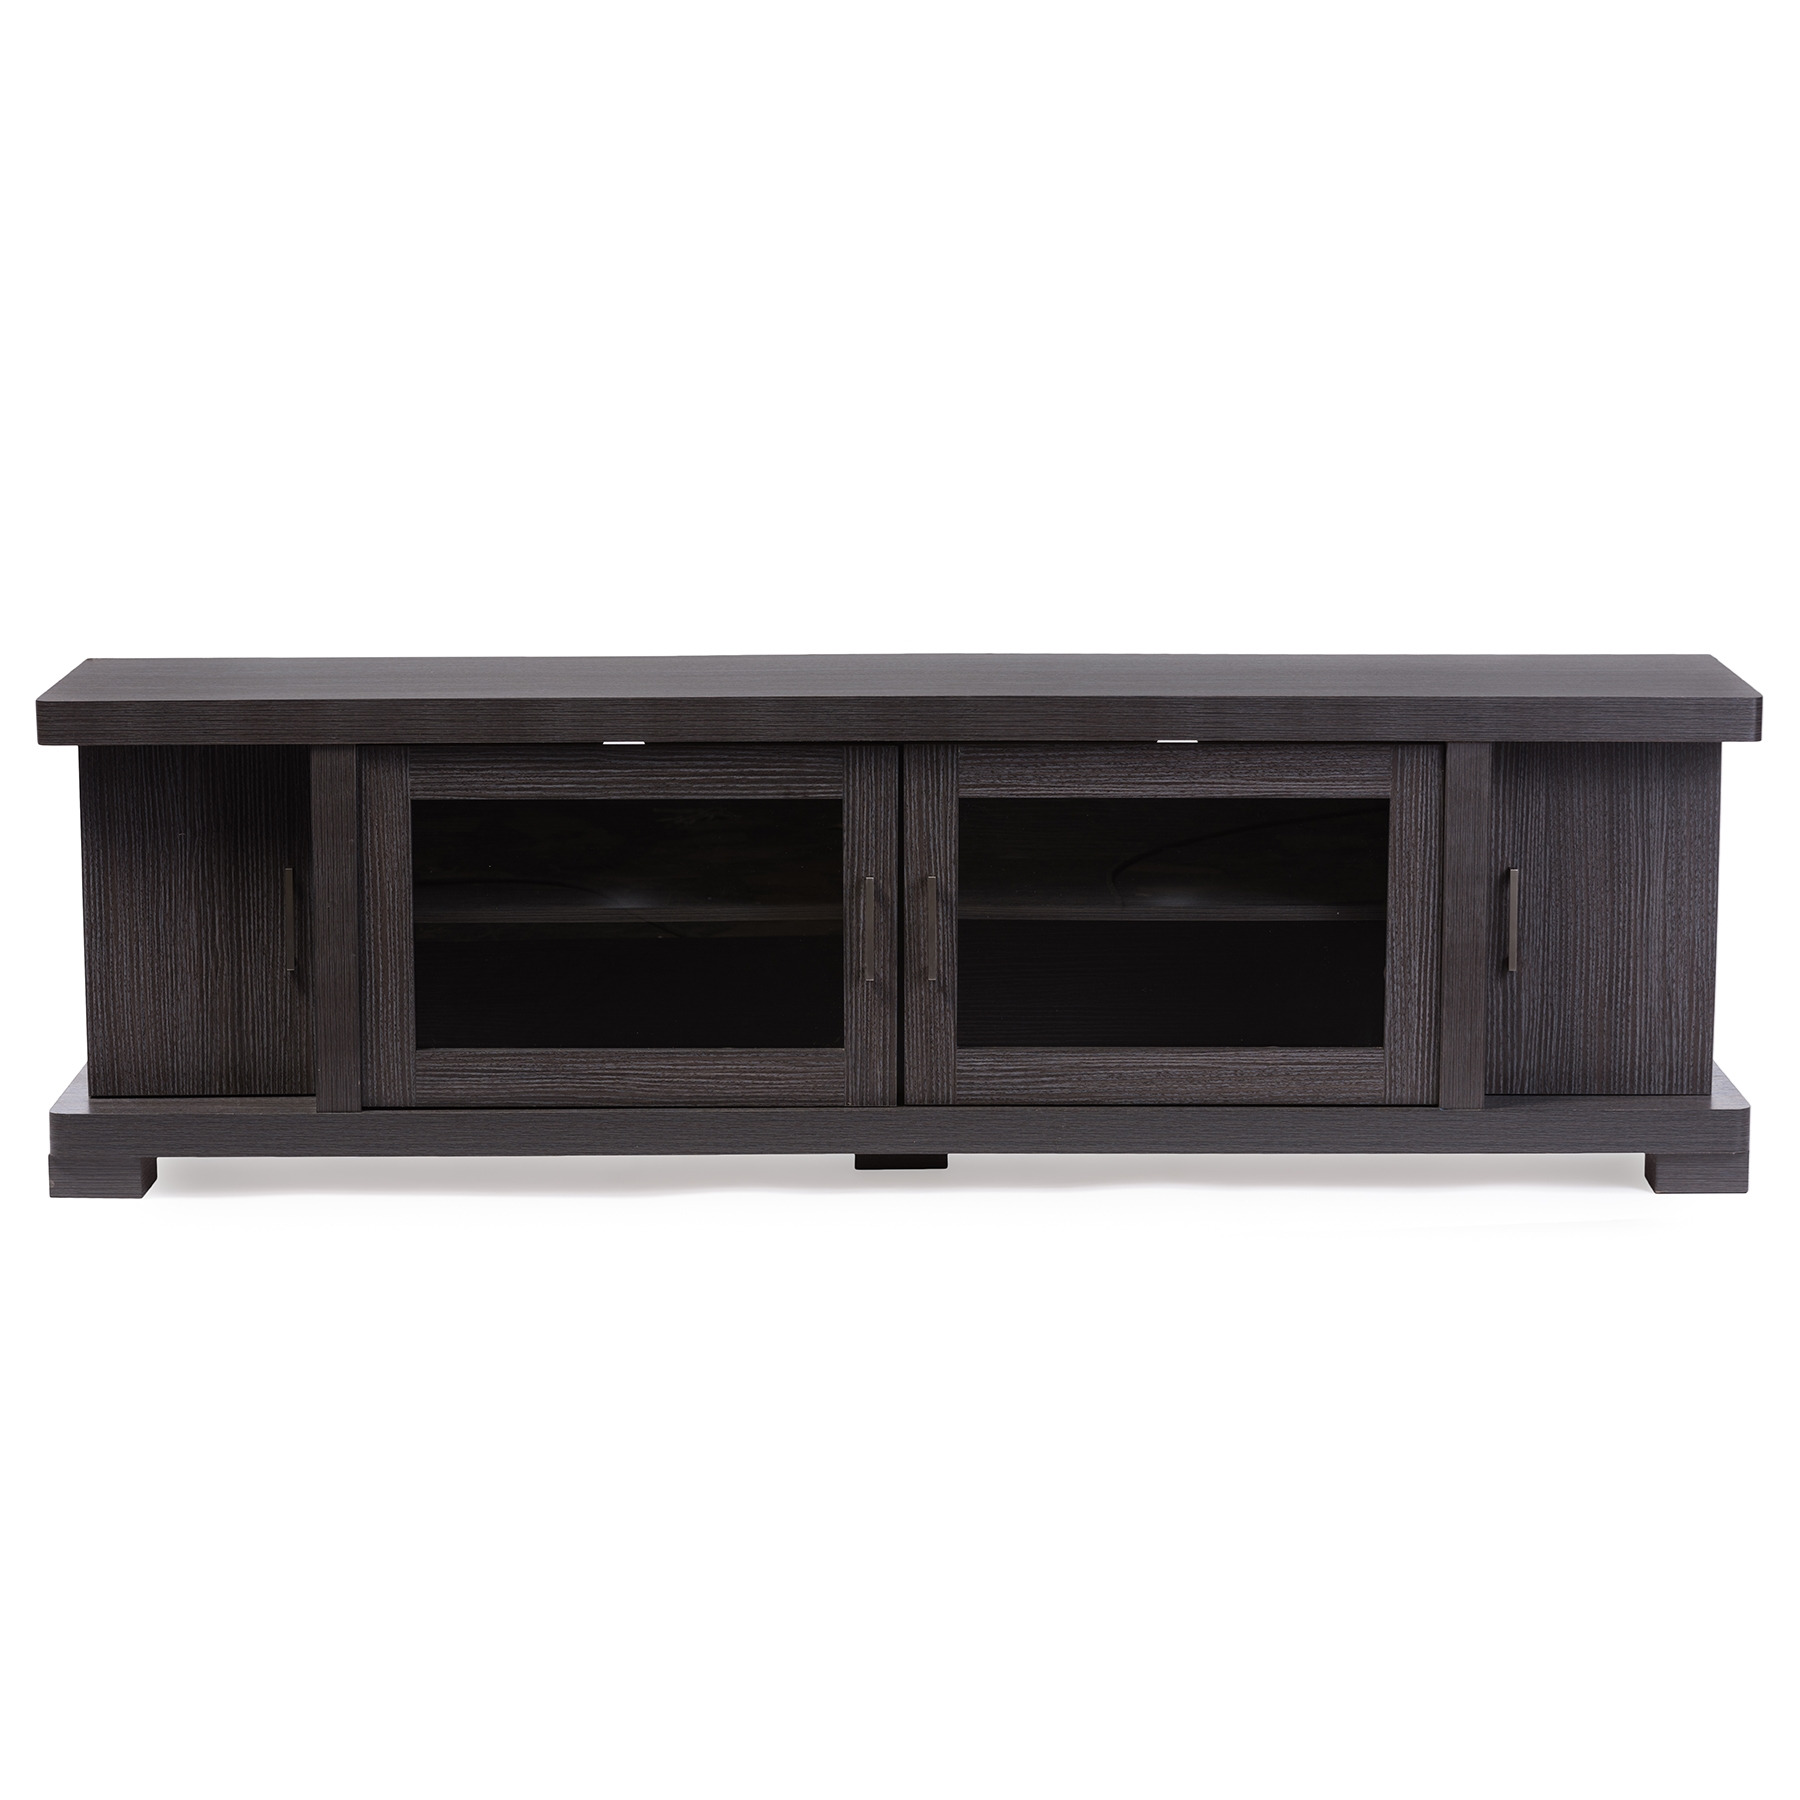 Baxton Studio Viveka 70 Inch Dark Brown Wood TV Cabinet With 2 Glass Doors  And 2 Doors